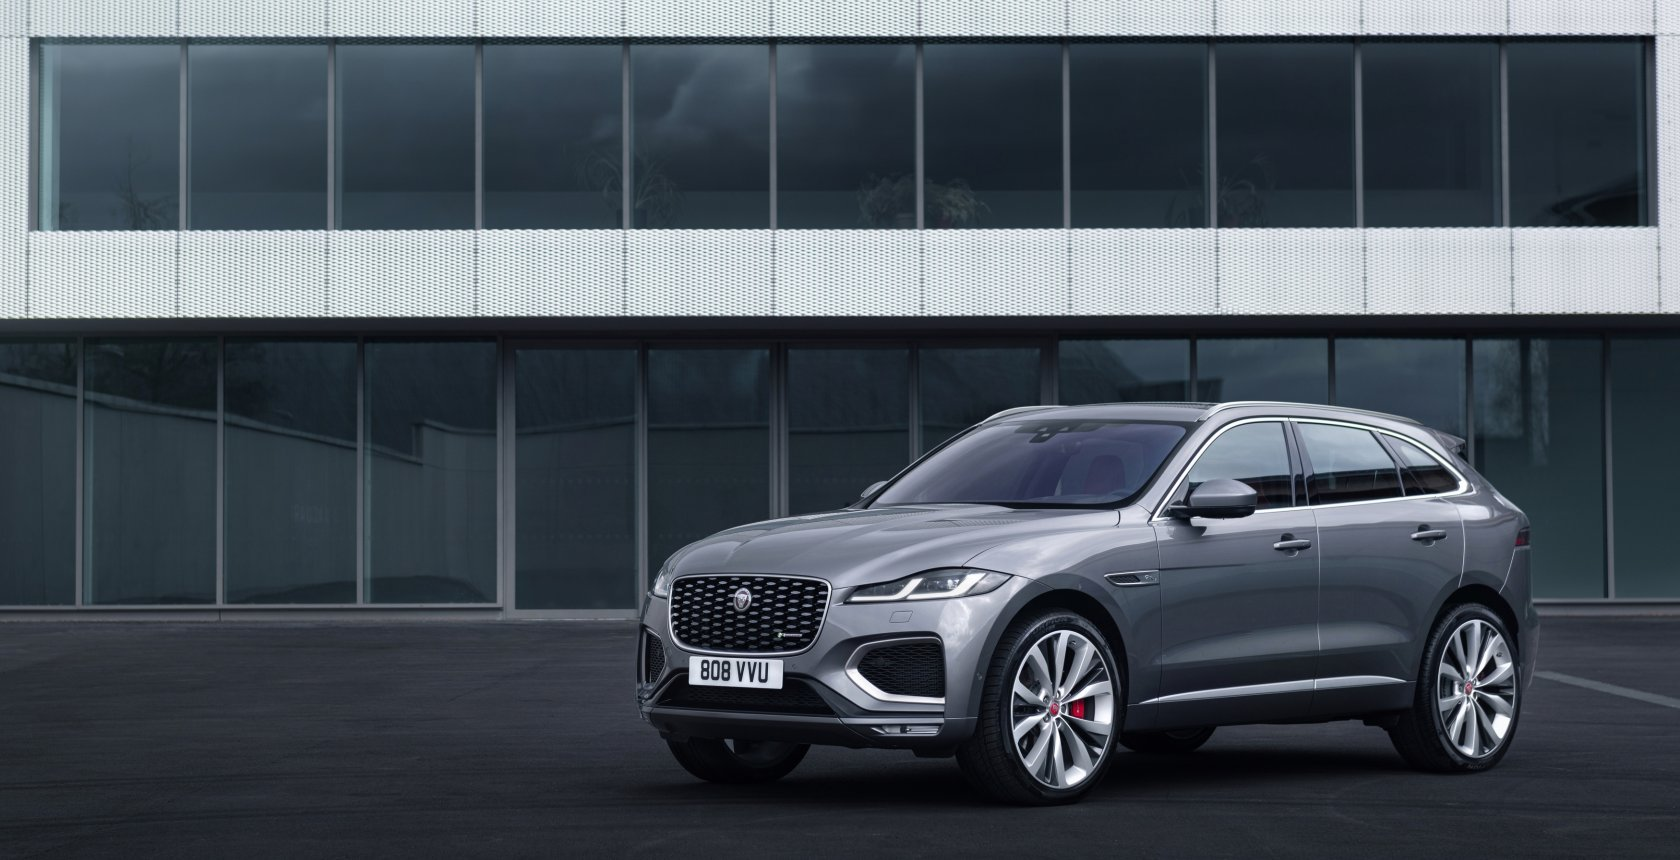 Jag F Pace 21 My 21 Location Static 05 Front 3Qtr 150920